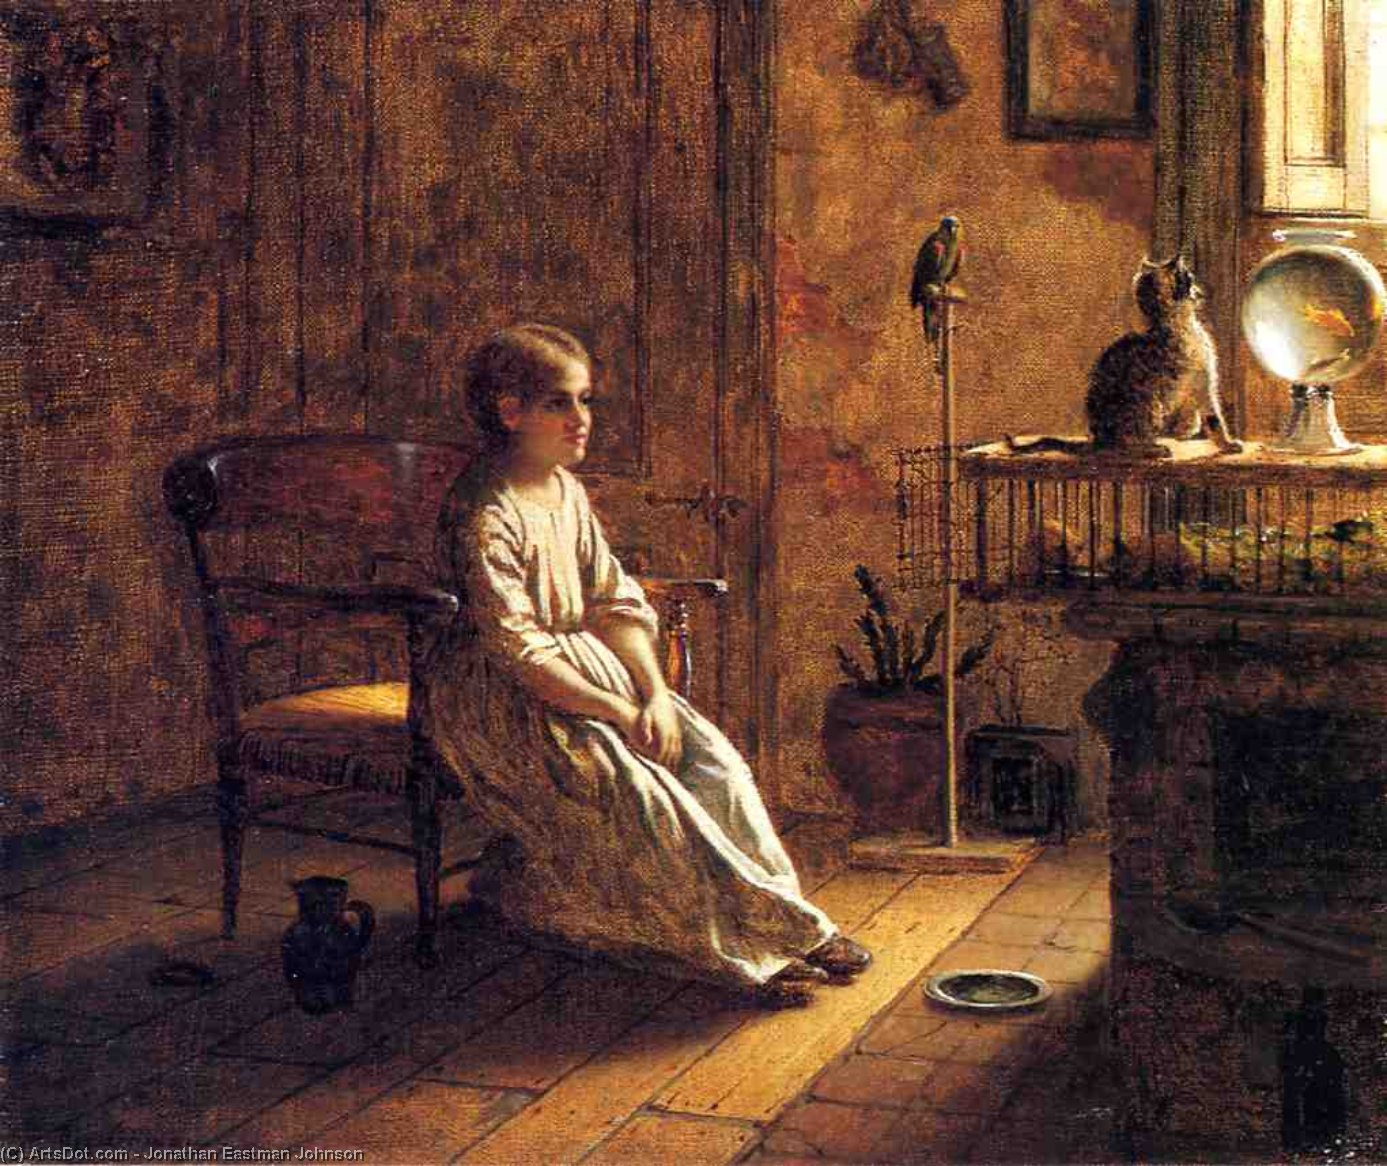 Une Child's Ménagerie, huile sur toile de Jonathan Eastman Johnson (1824-1906, United Kingdom)